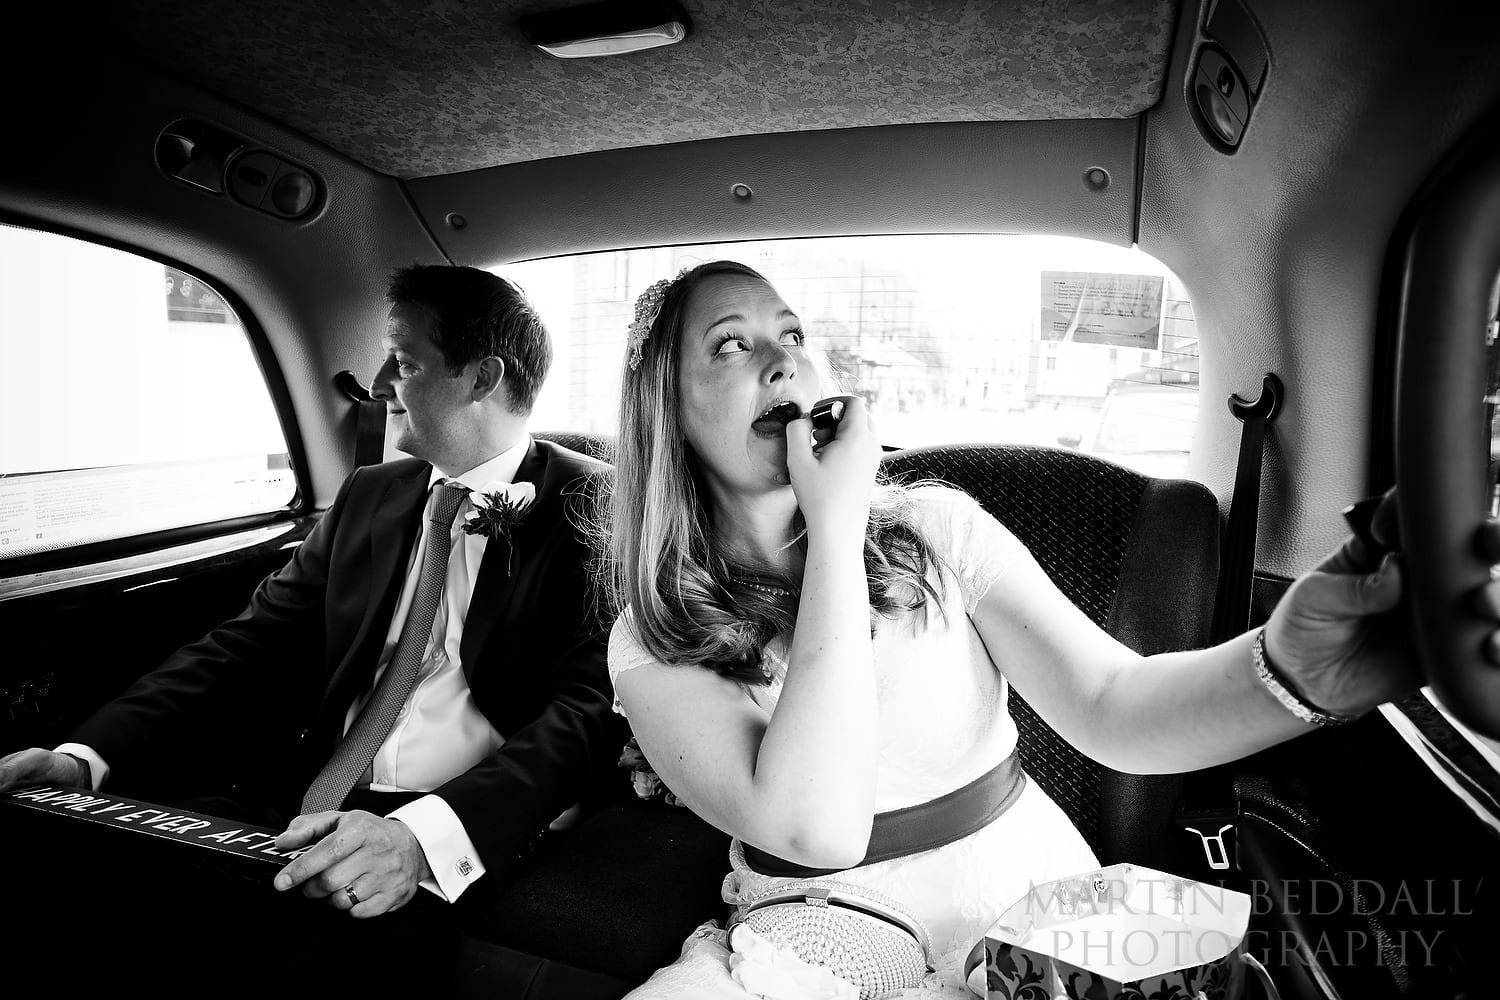 Lipstick in the taxi